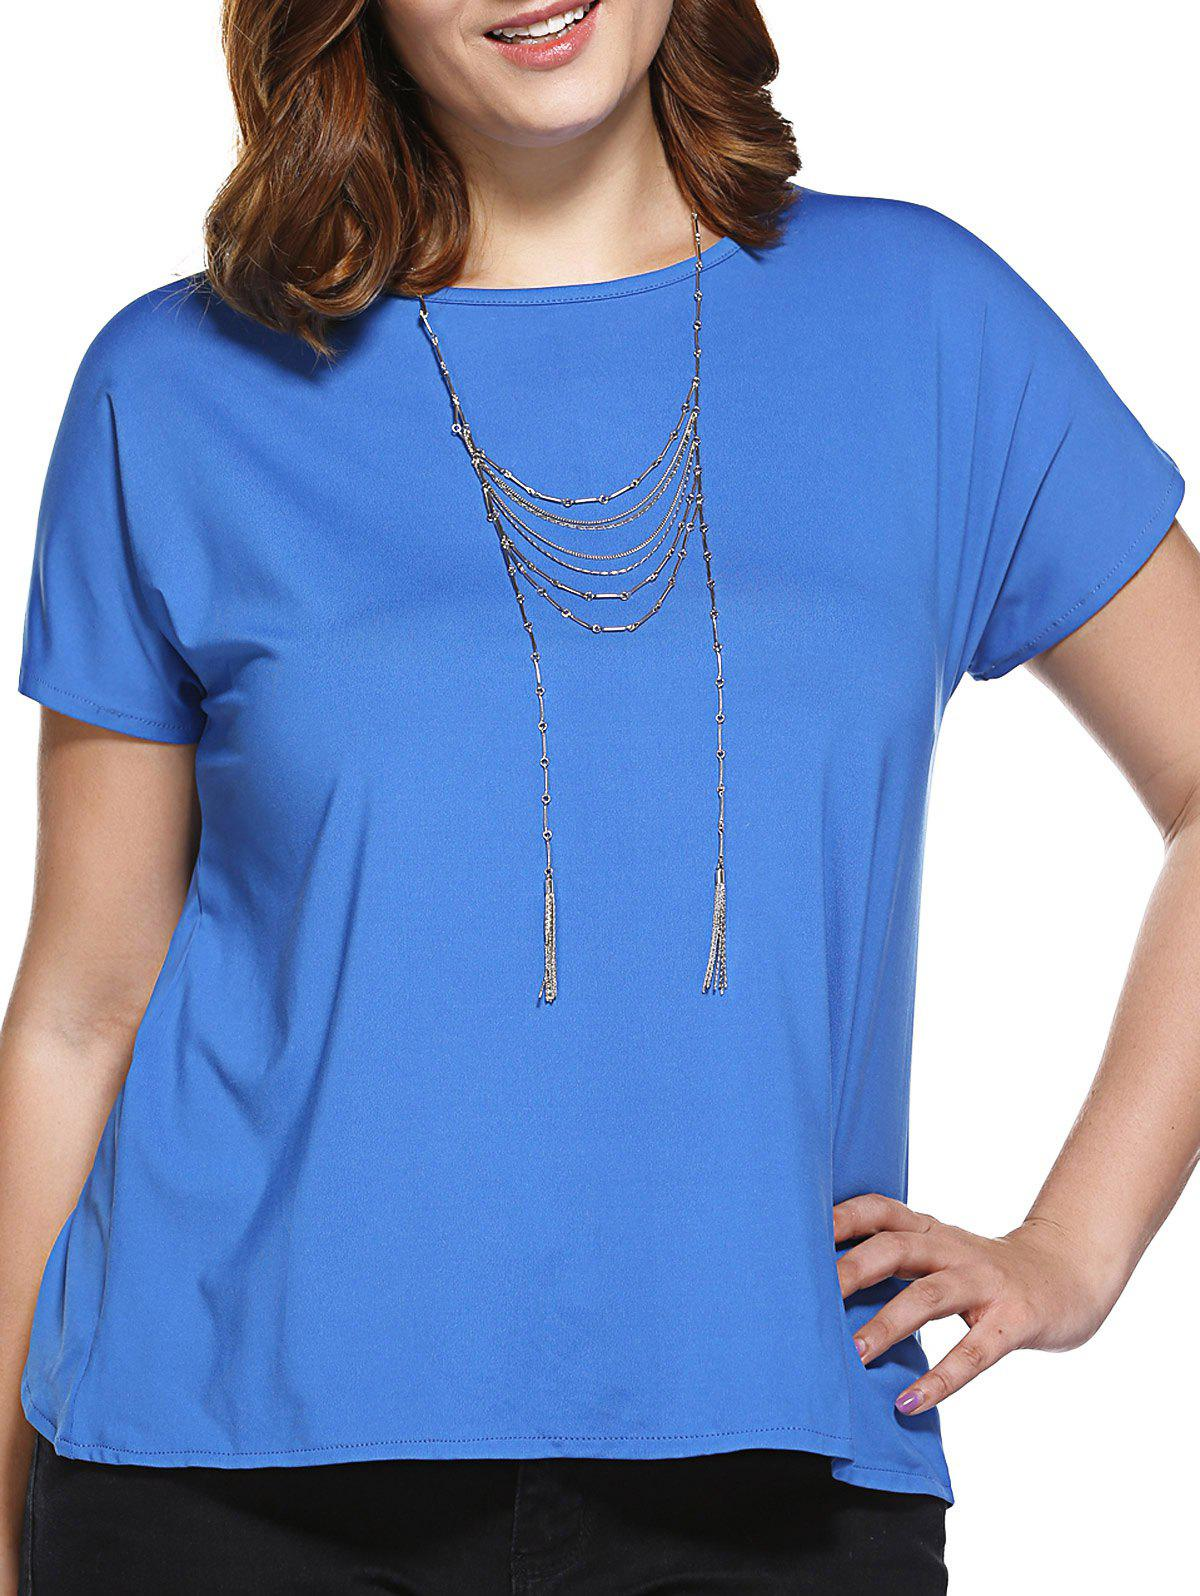 Stylish Women's Slimming Round Neck Tulip Plus Size Top - SAPPHIRE BLUE 4XL